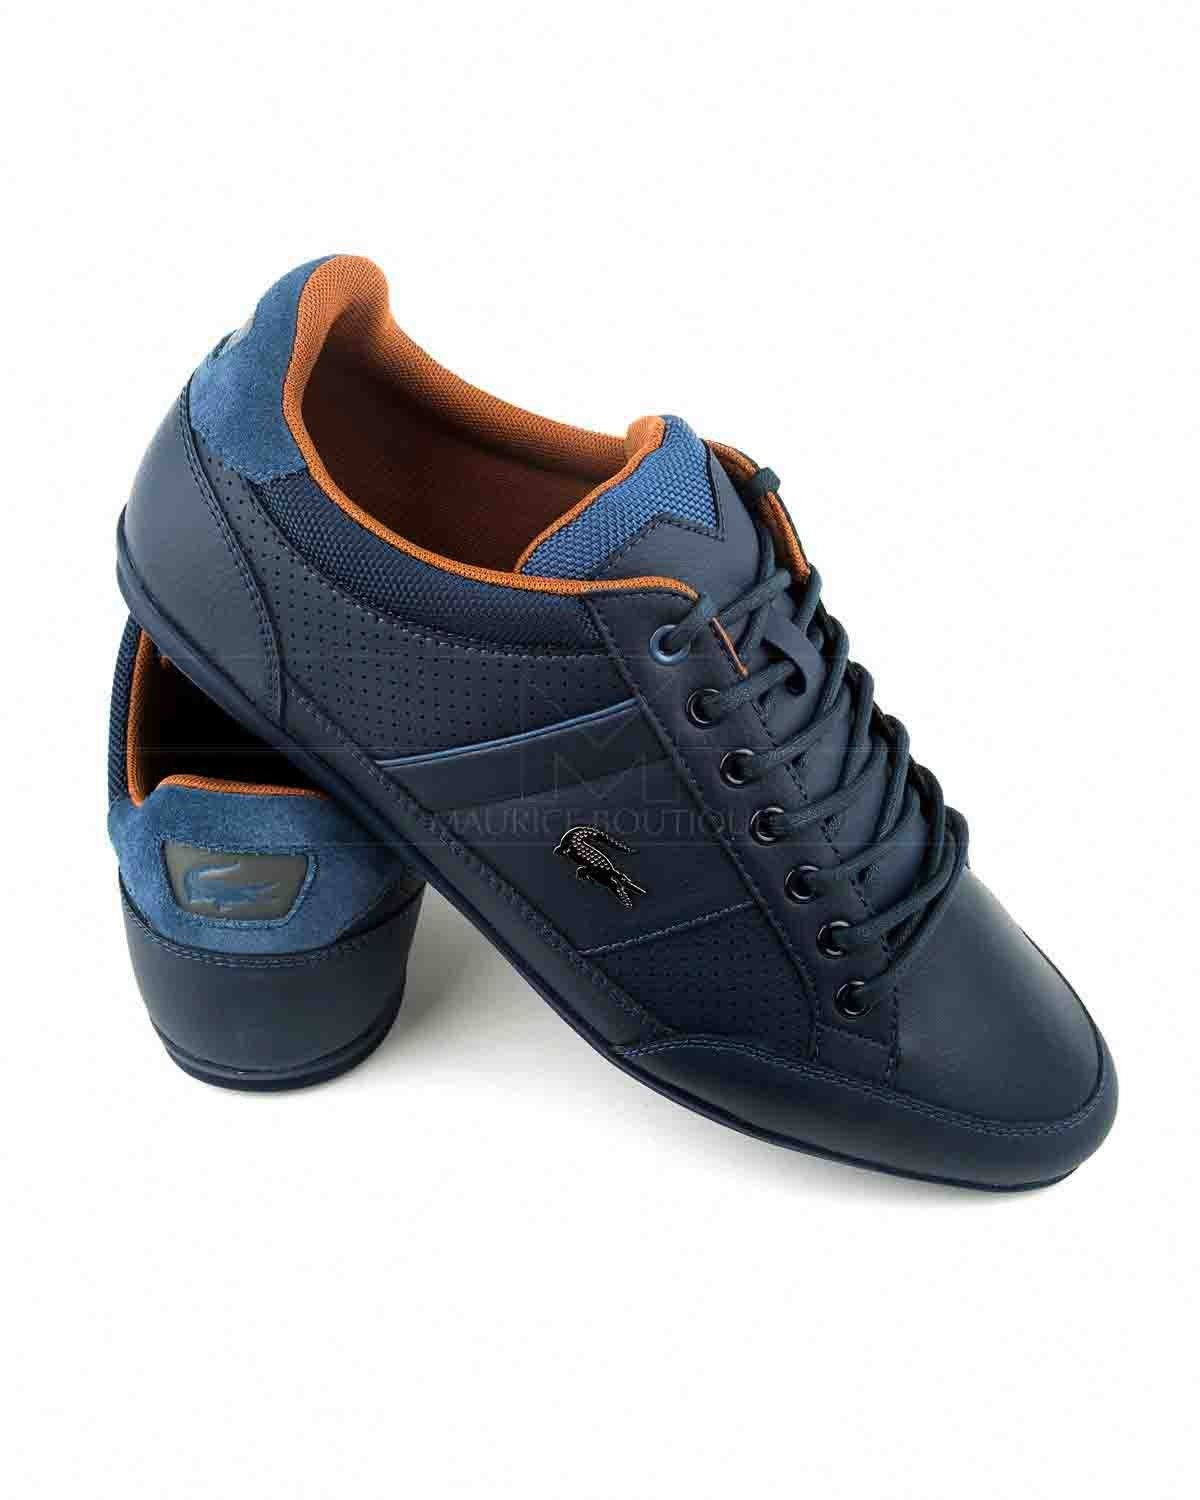 3db762416 Lacoste Trainers Chaymon - Navy Blue in 2019